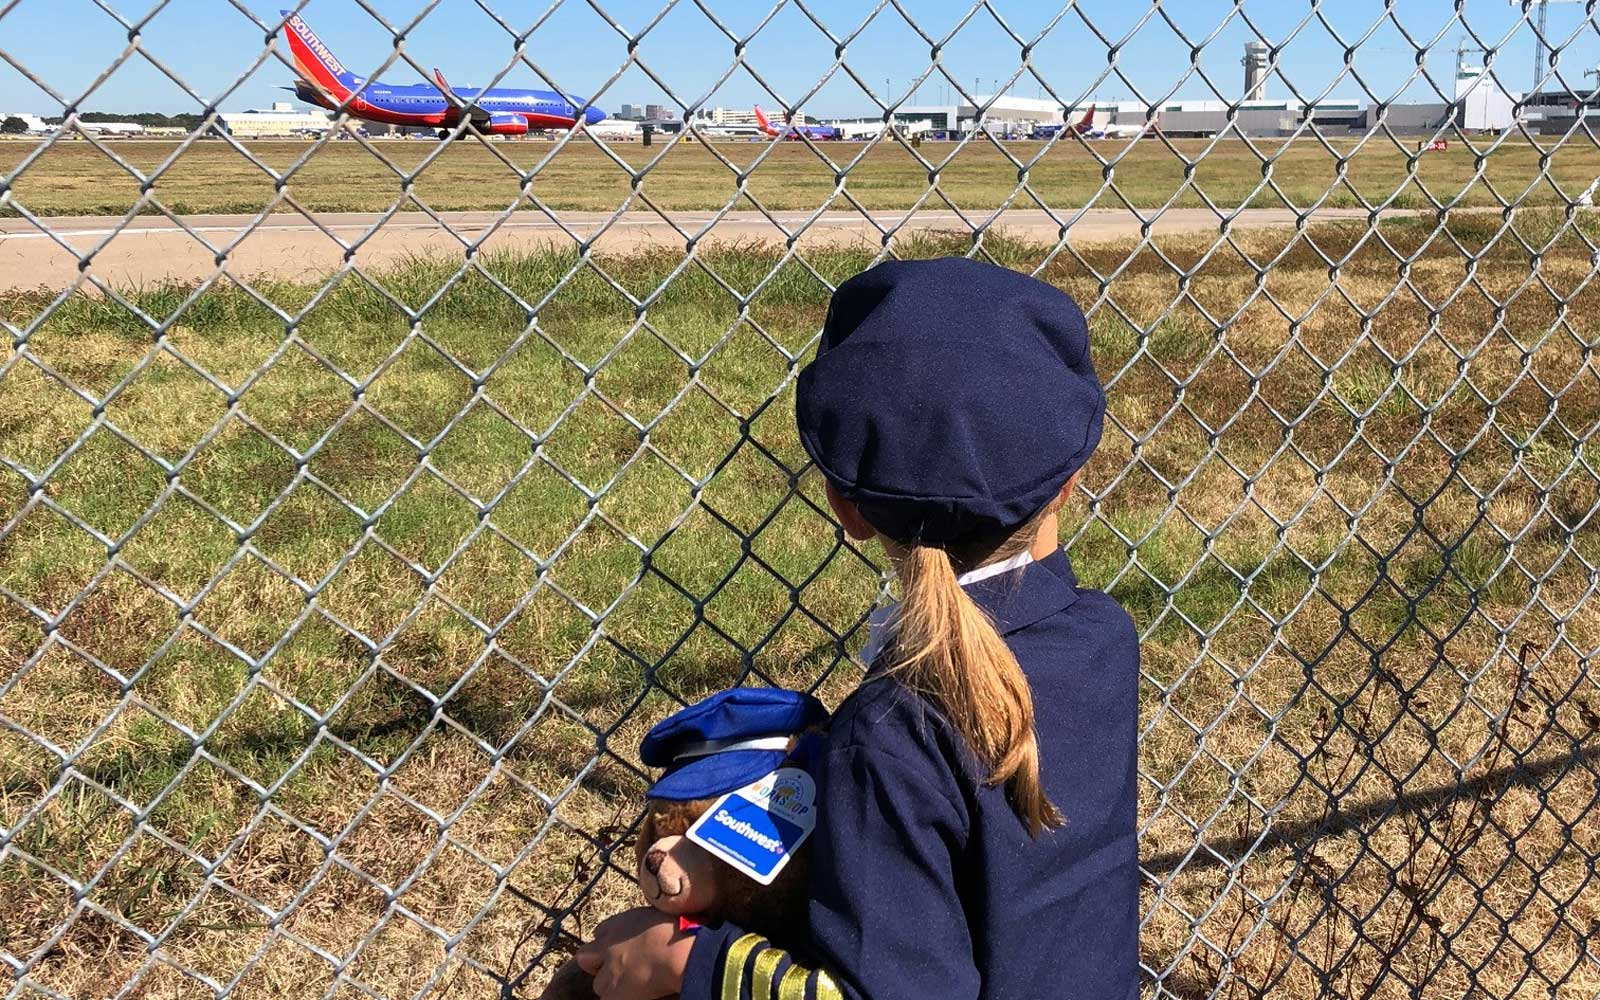 Southwest gives 6yr old girl flight lesson experience